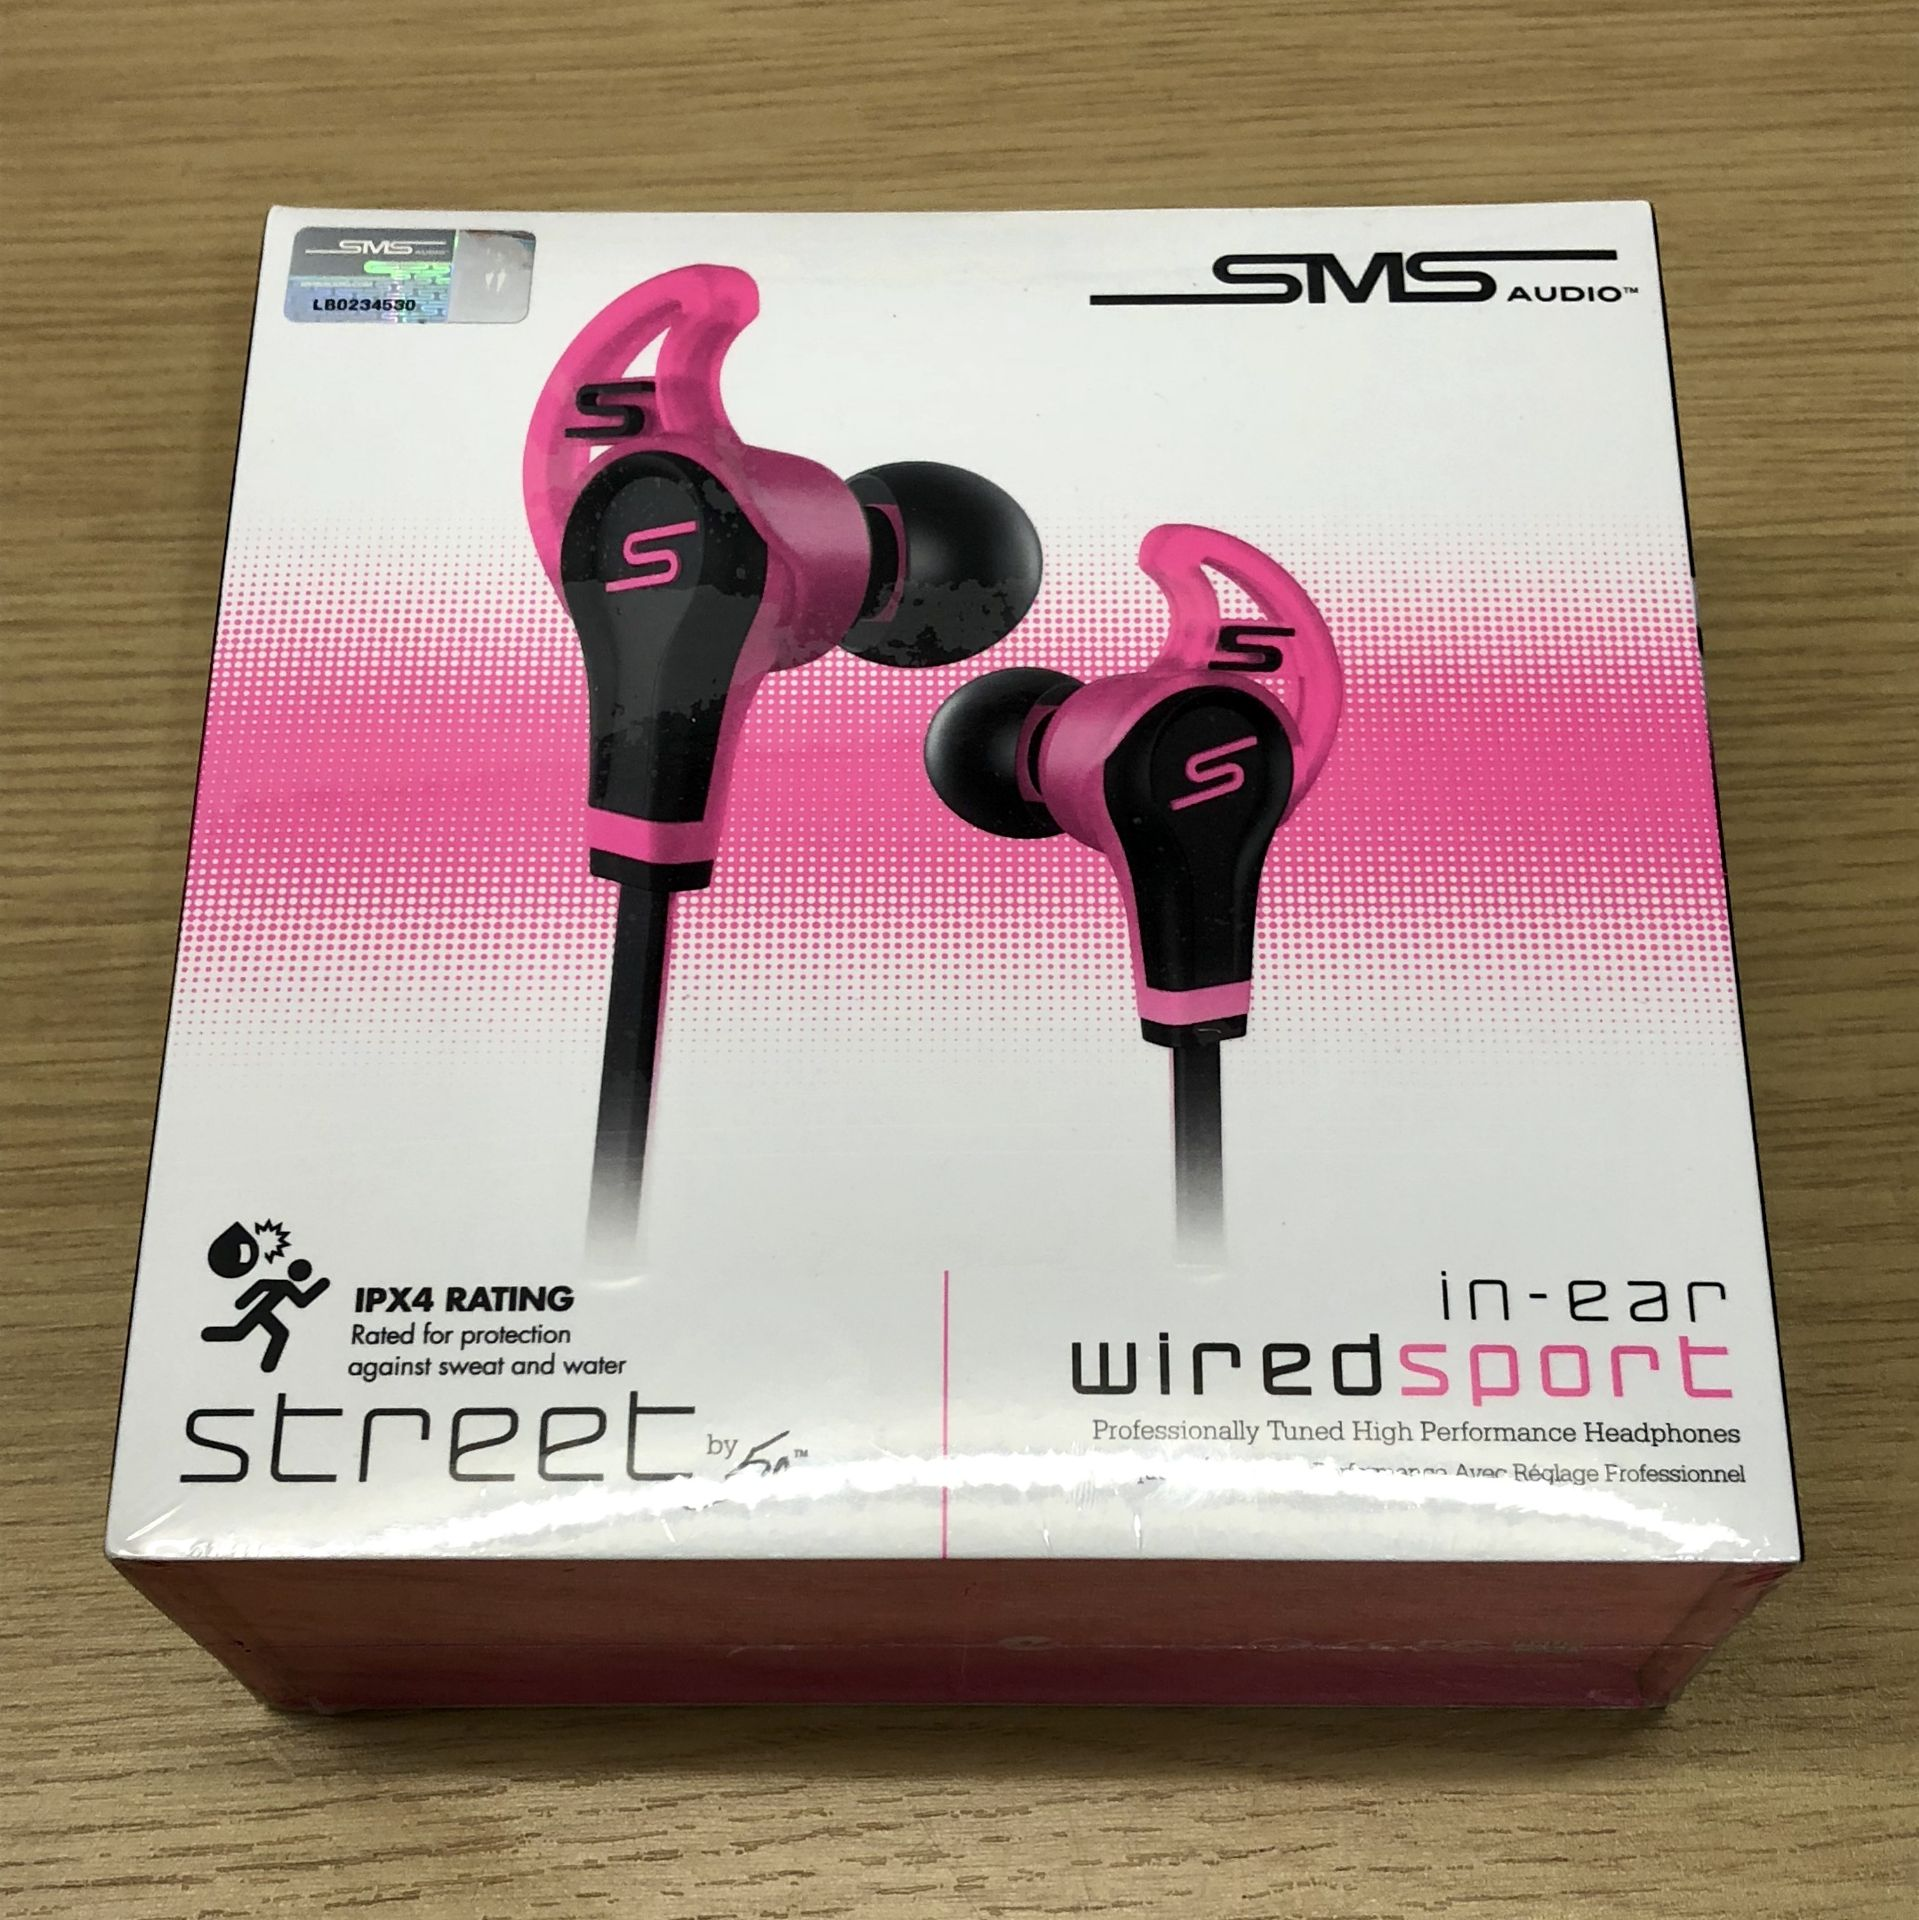 + VAT Brand New SMS Audio Street By 50 Cent Sport Earphones - RRP £59.99 - Professionally Tuned - Image 2 of 2